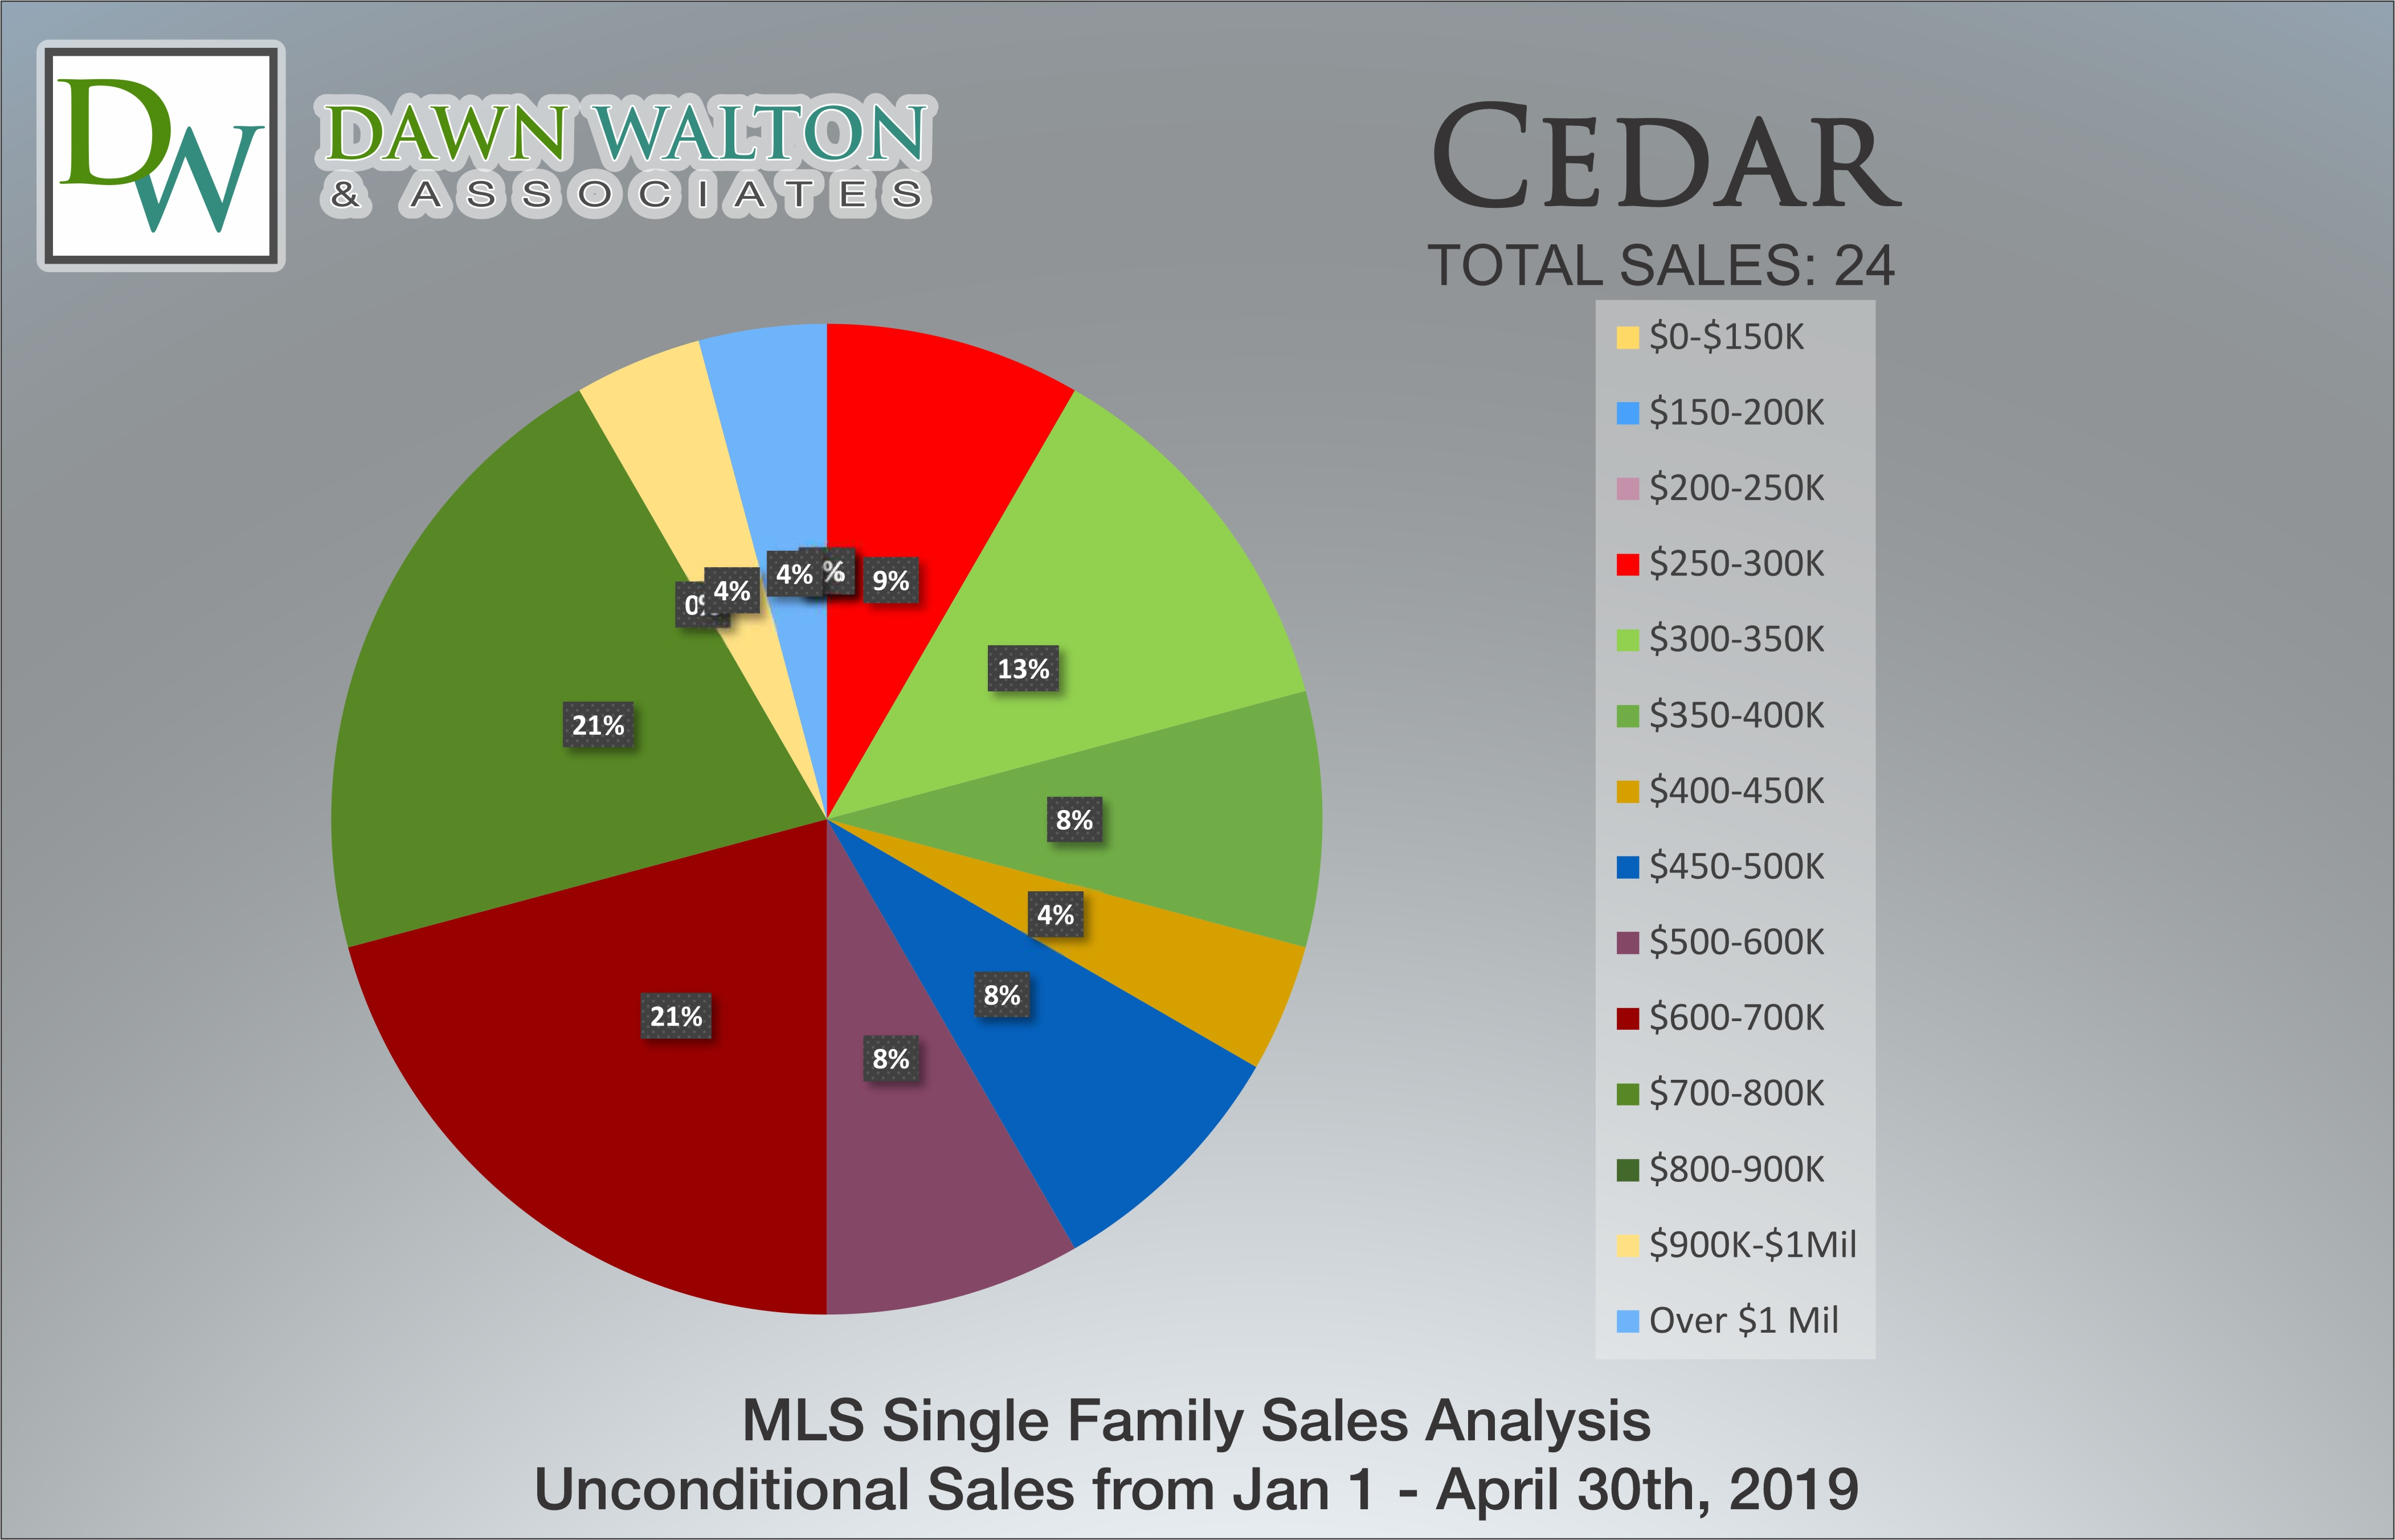 Cedar Real Estate Market Stats Price Percentage Jan 1 - April 30, 2019 - Nanaimo Realtor